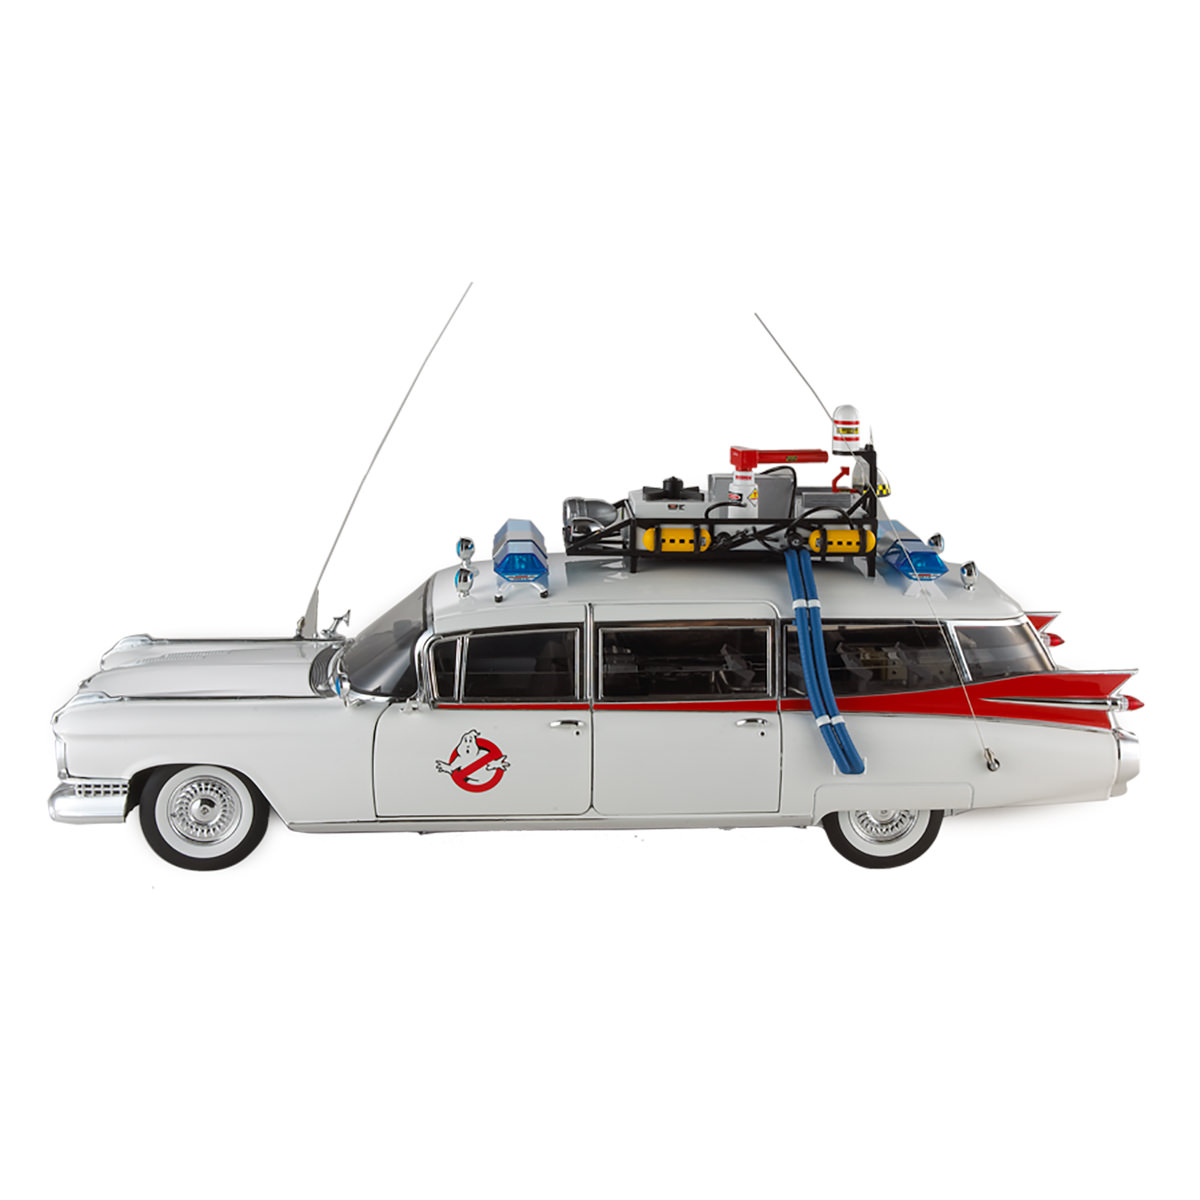 Hot Wheels Ghostbusters Ecto 1 1 18 Scale Diecast Vehicle